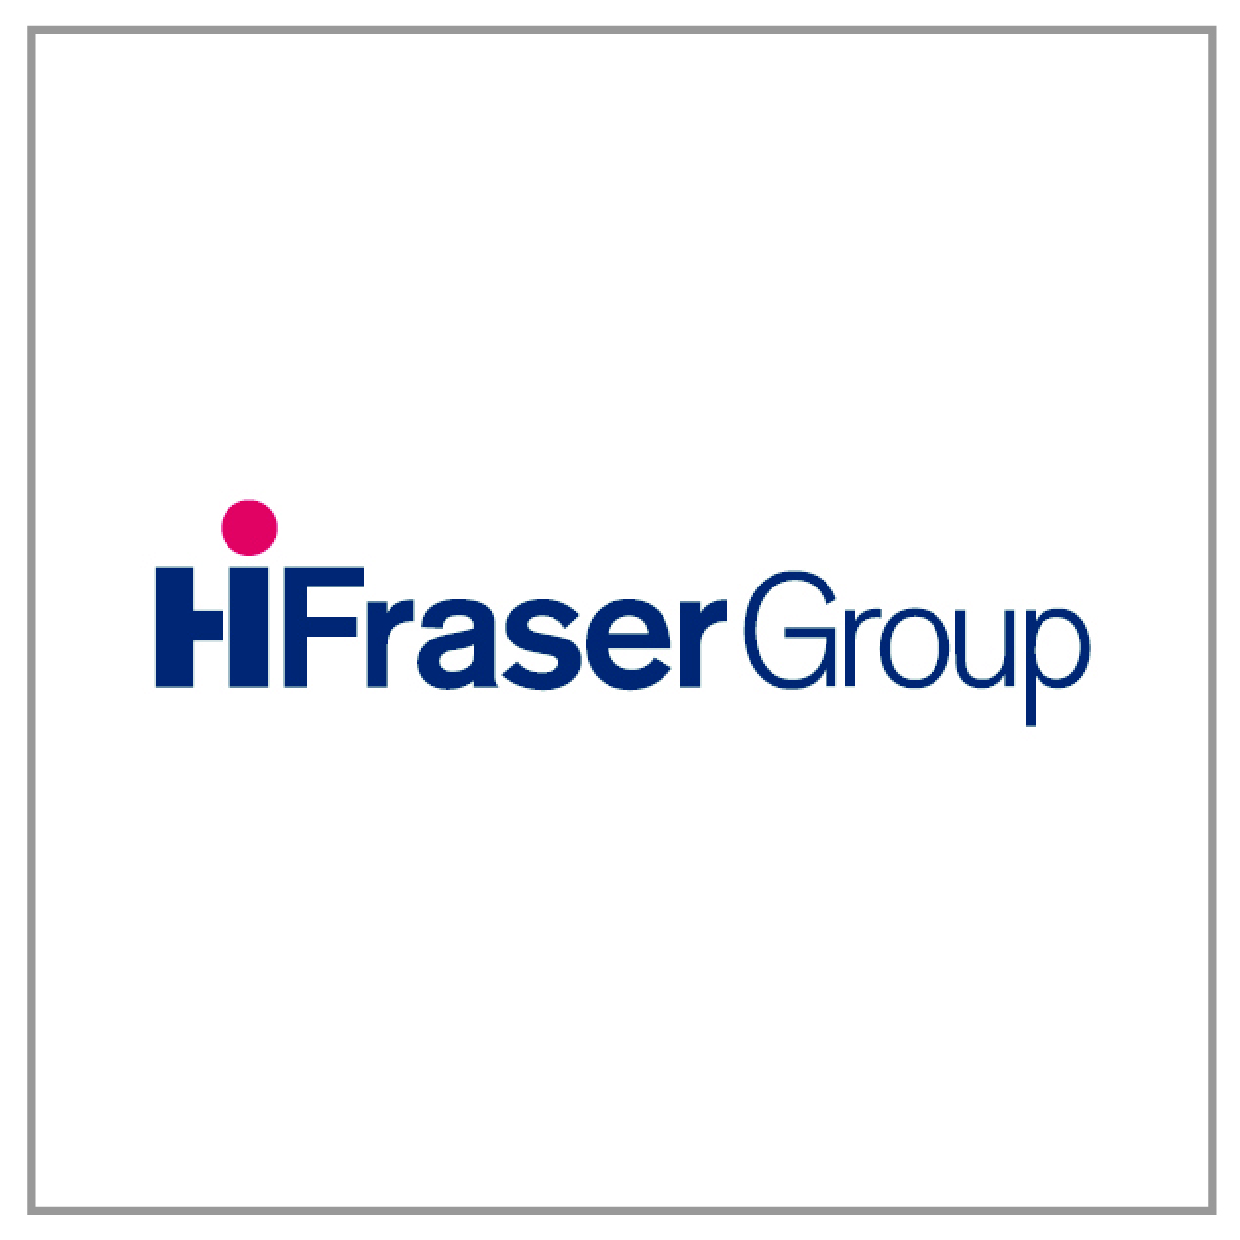 hi-fraser-group